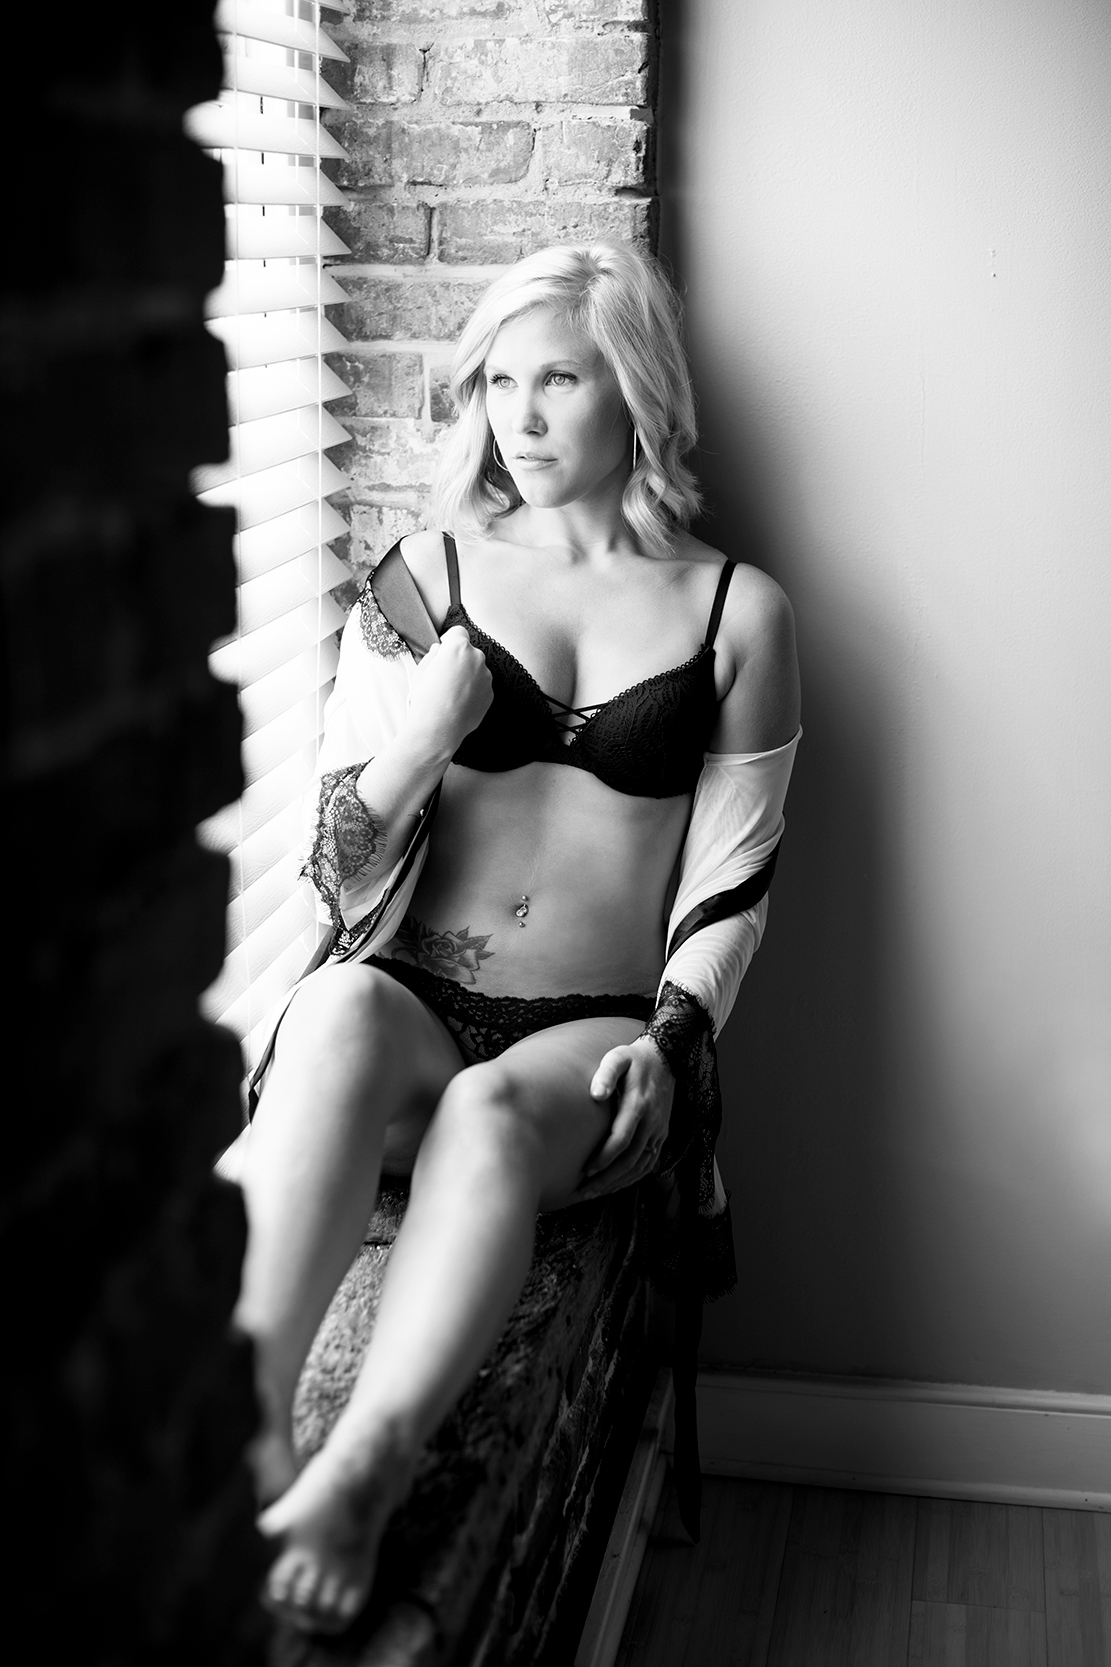 Best Friends do a Boudoir Shoot Together - Image Property of www.j-dphoto.com